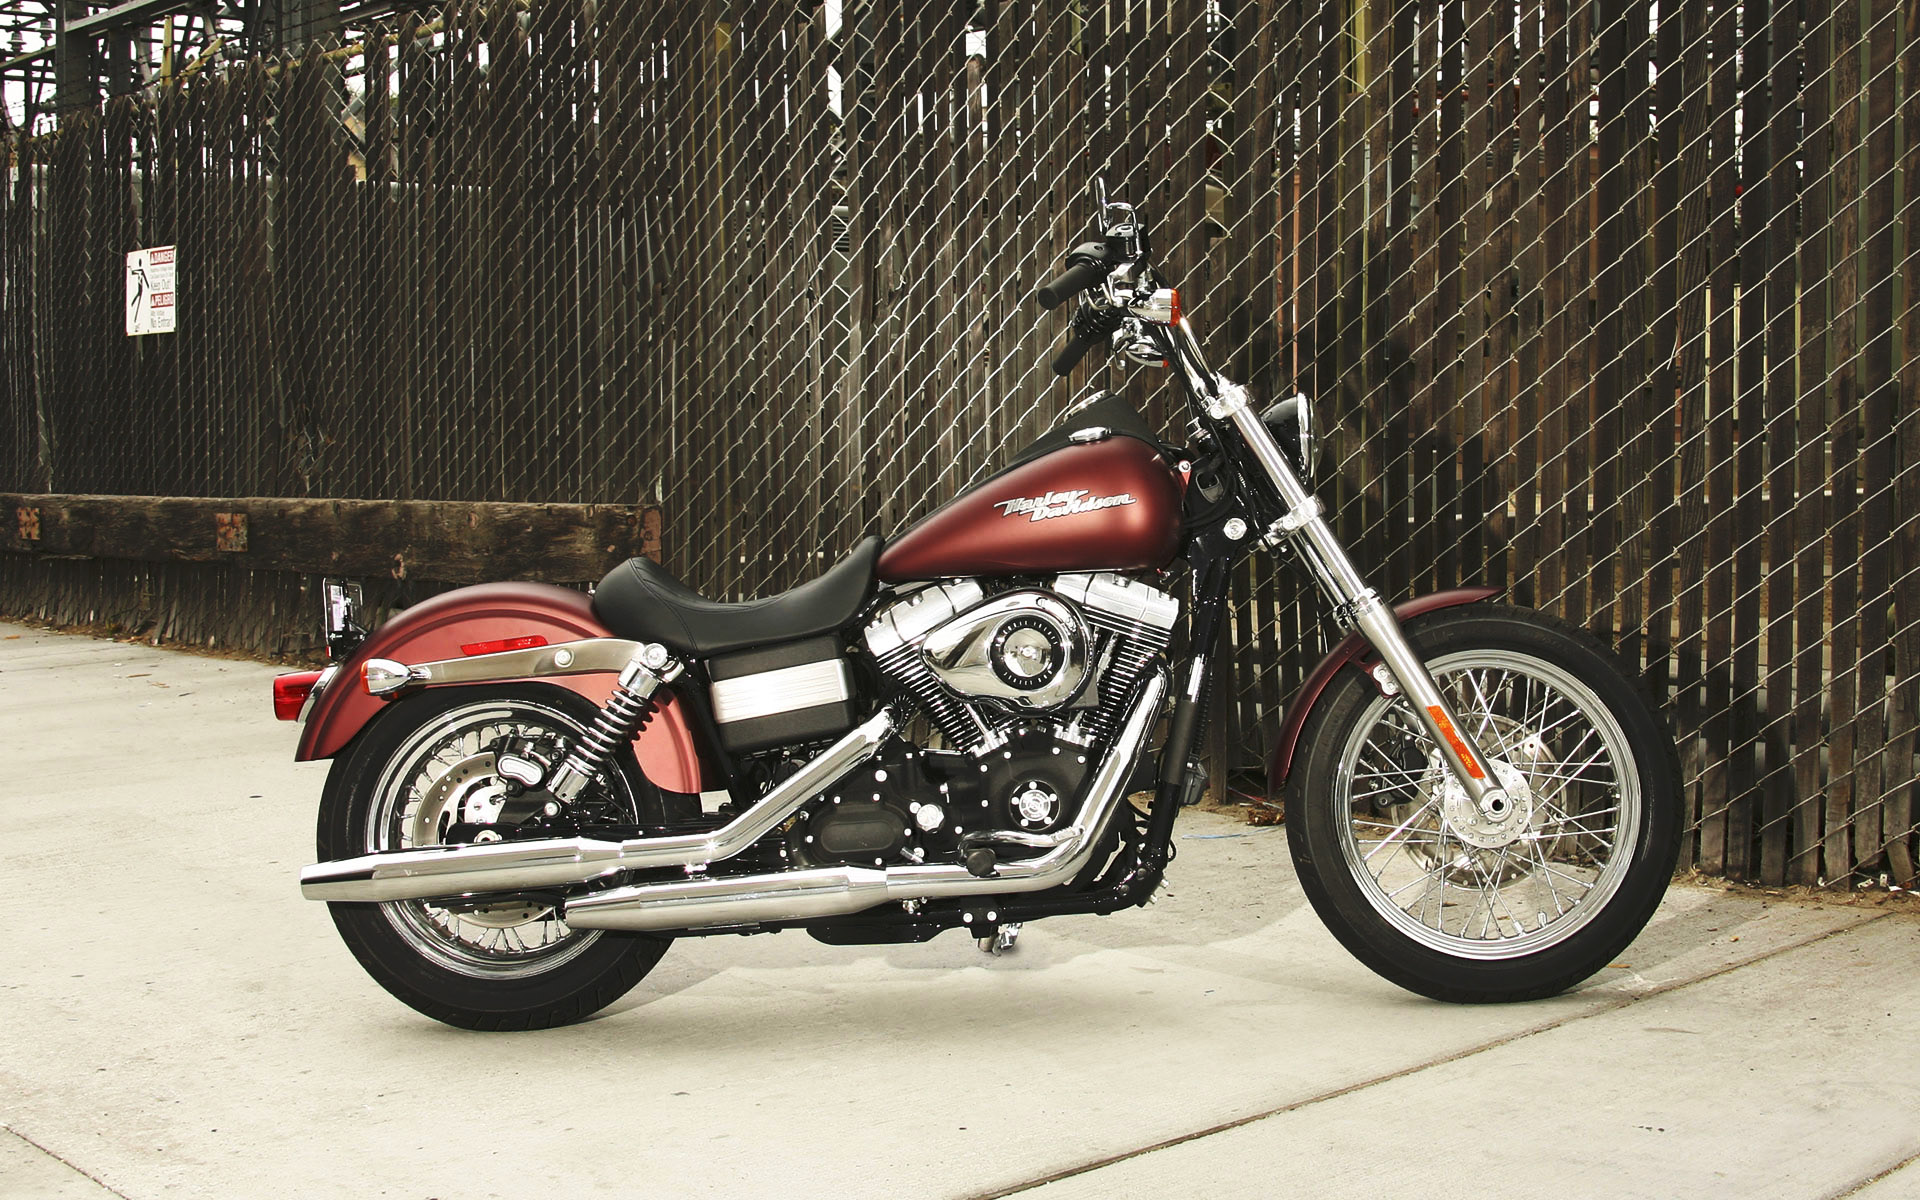 1991 HARLEY-DAVIDSON XLH SPORTSTER 1200 (REDUCED EFFECT